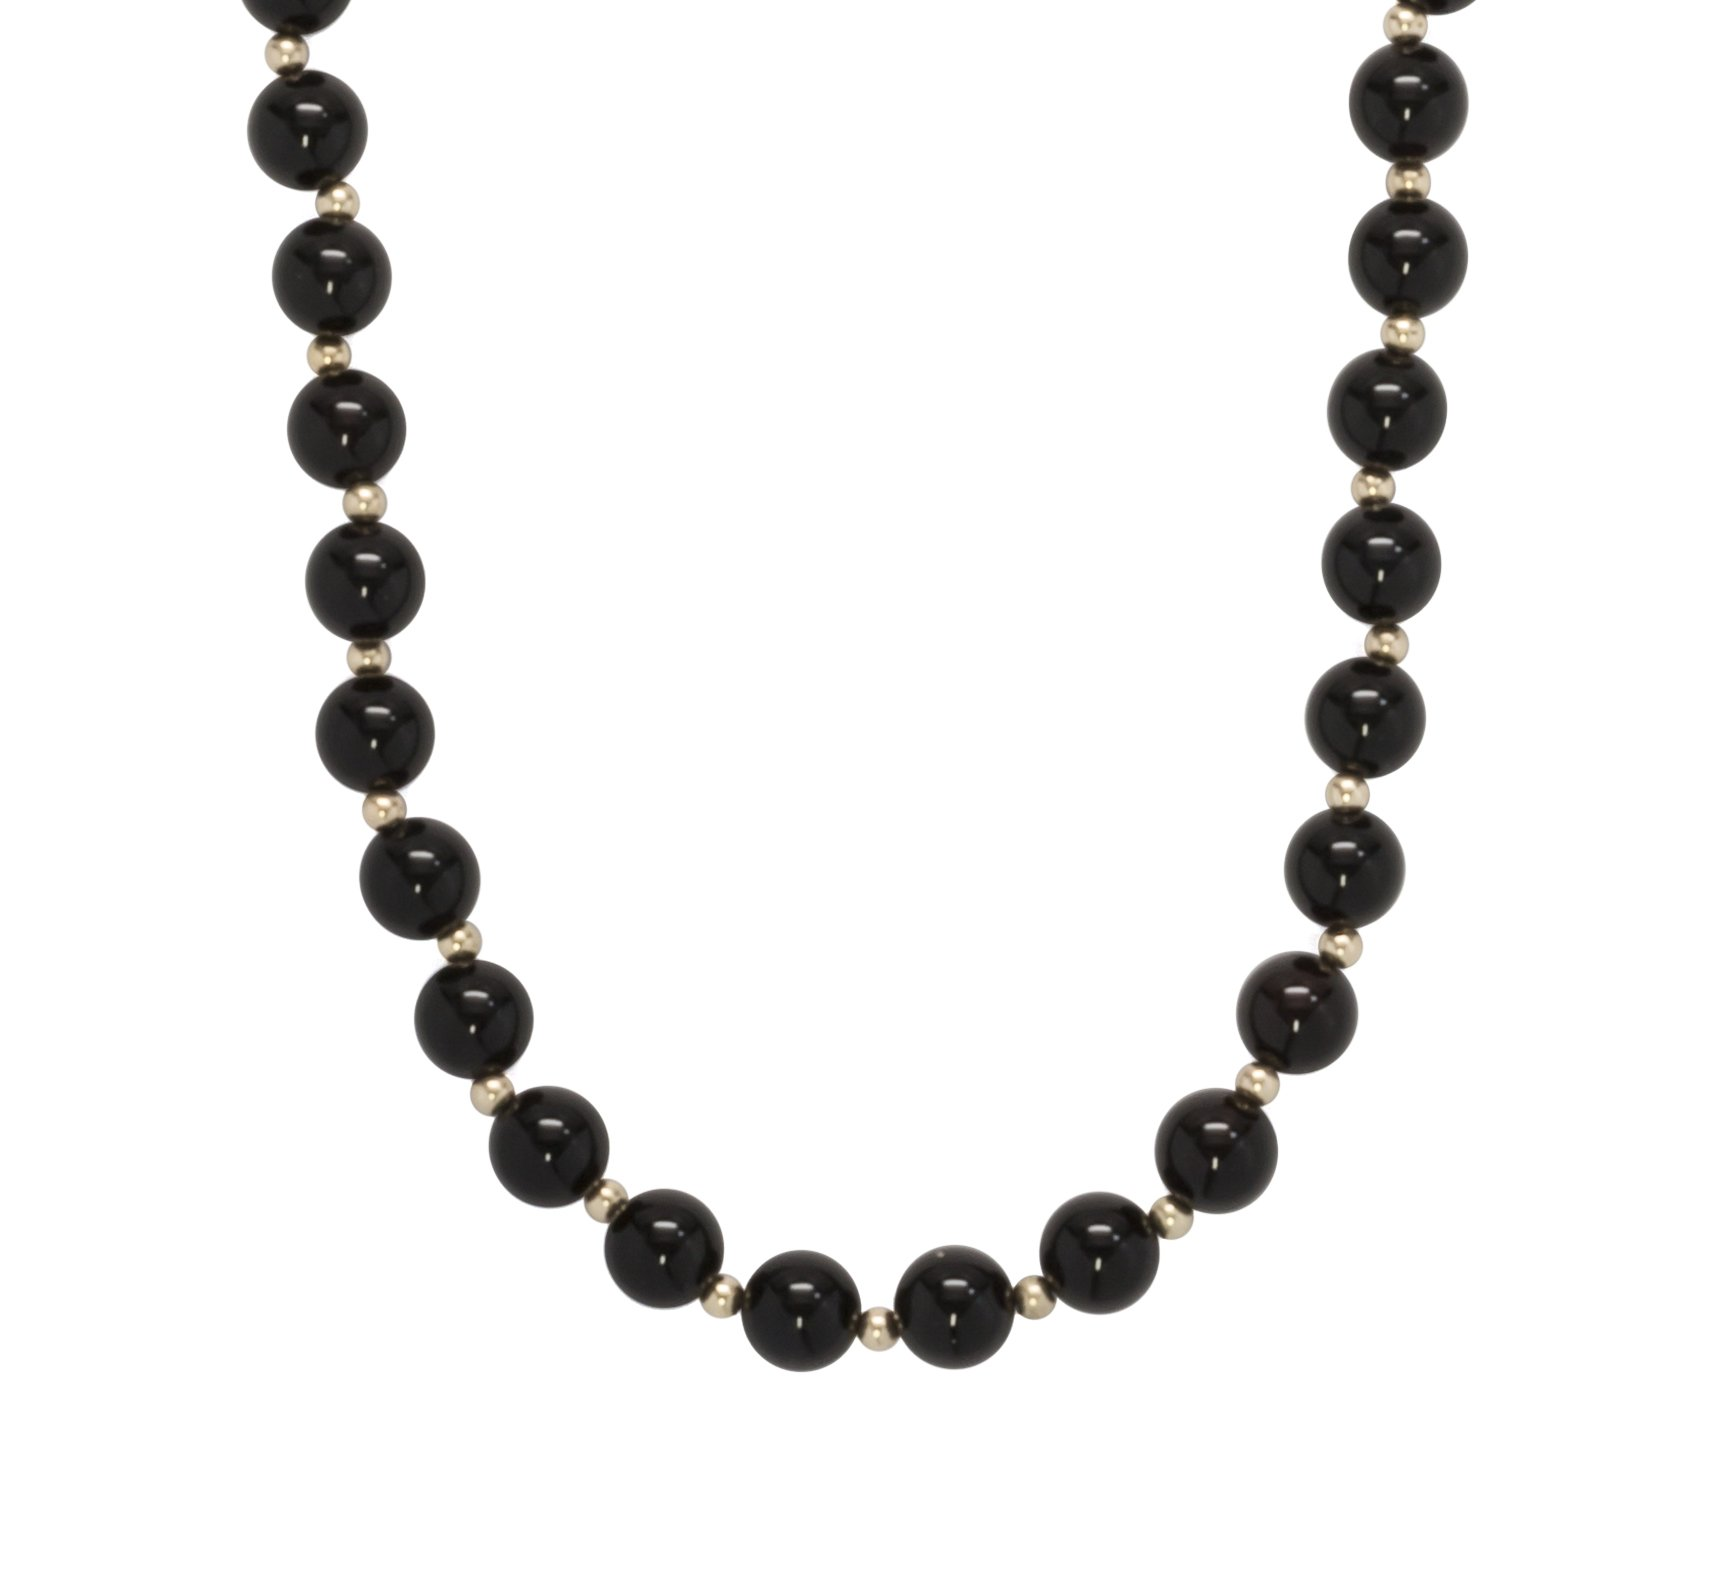 ISAAC WESTMAN 8mm Polished Black Onyx Beads & 14K Yellow Gold Necklace | 14K Gold Ball Clasp by ISAAC WESTMAN